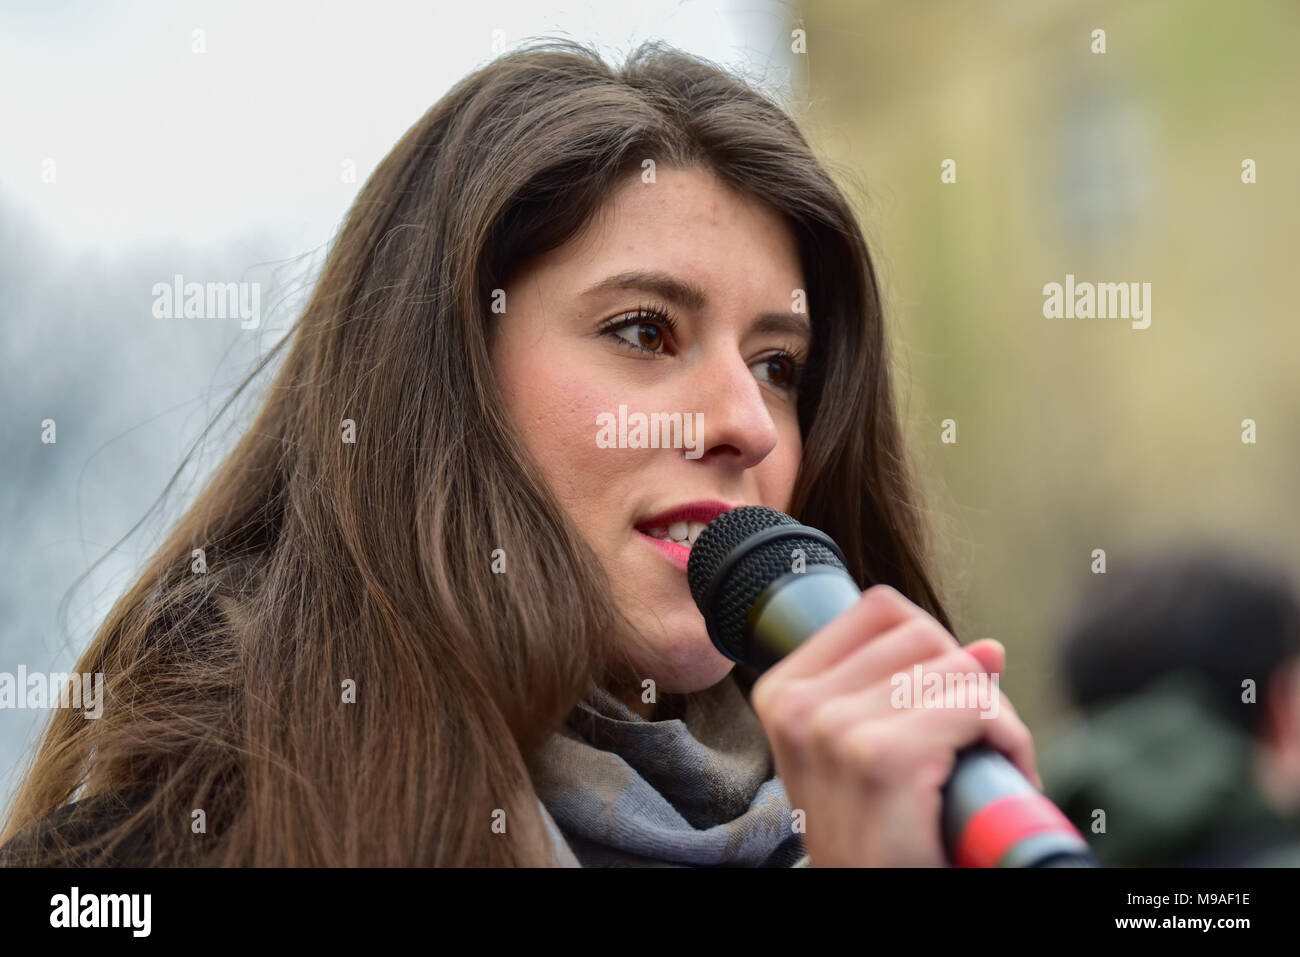 Birmingham, United Kingdom. 24 March 2018. People have gathered for the 'Football Lads Alliance' (FLA) demonstration in Birmingham. There were speeches from John Mieghan, Anne Marie Waters, Luke Nash-Jones and Aline Moraes. After a short march the group dispersed in Edgbaston St. Pictured: Aline Moraes  Credit: Peter Manning/Alamy Live News - Stock Image